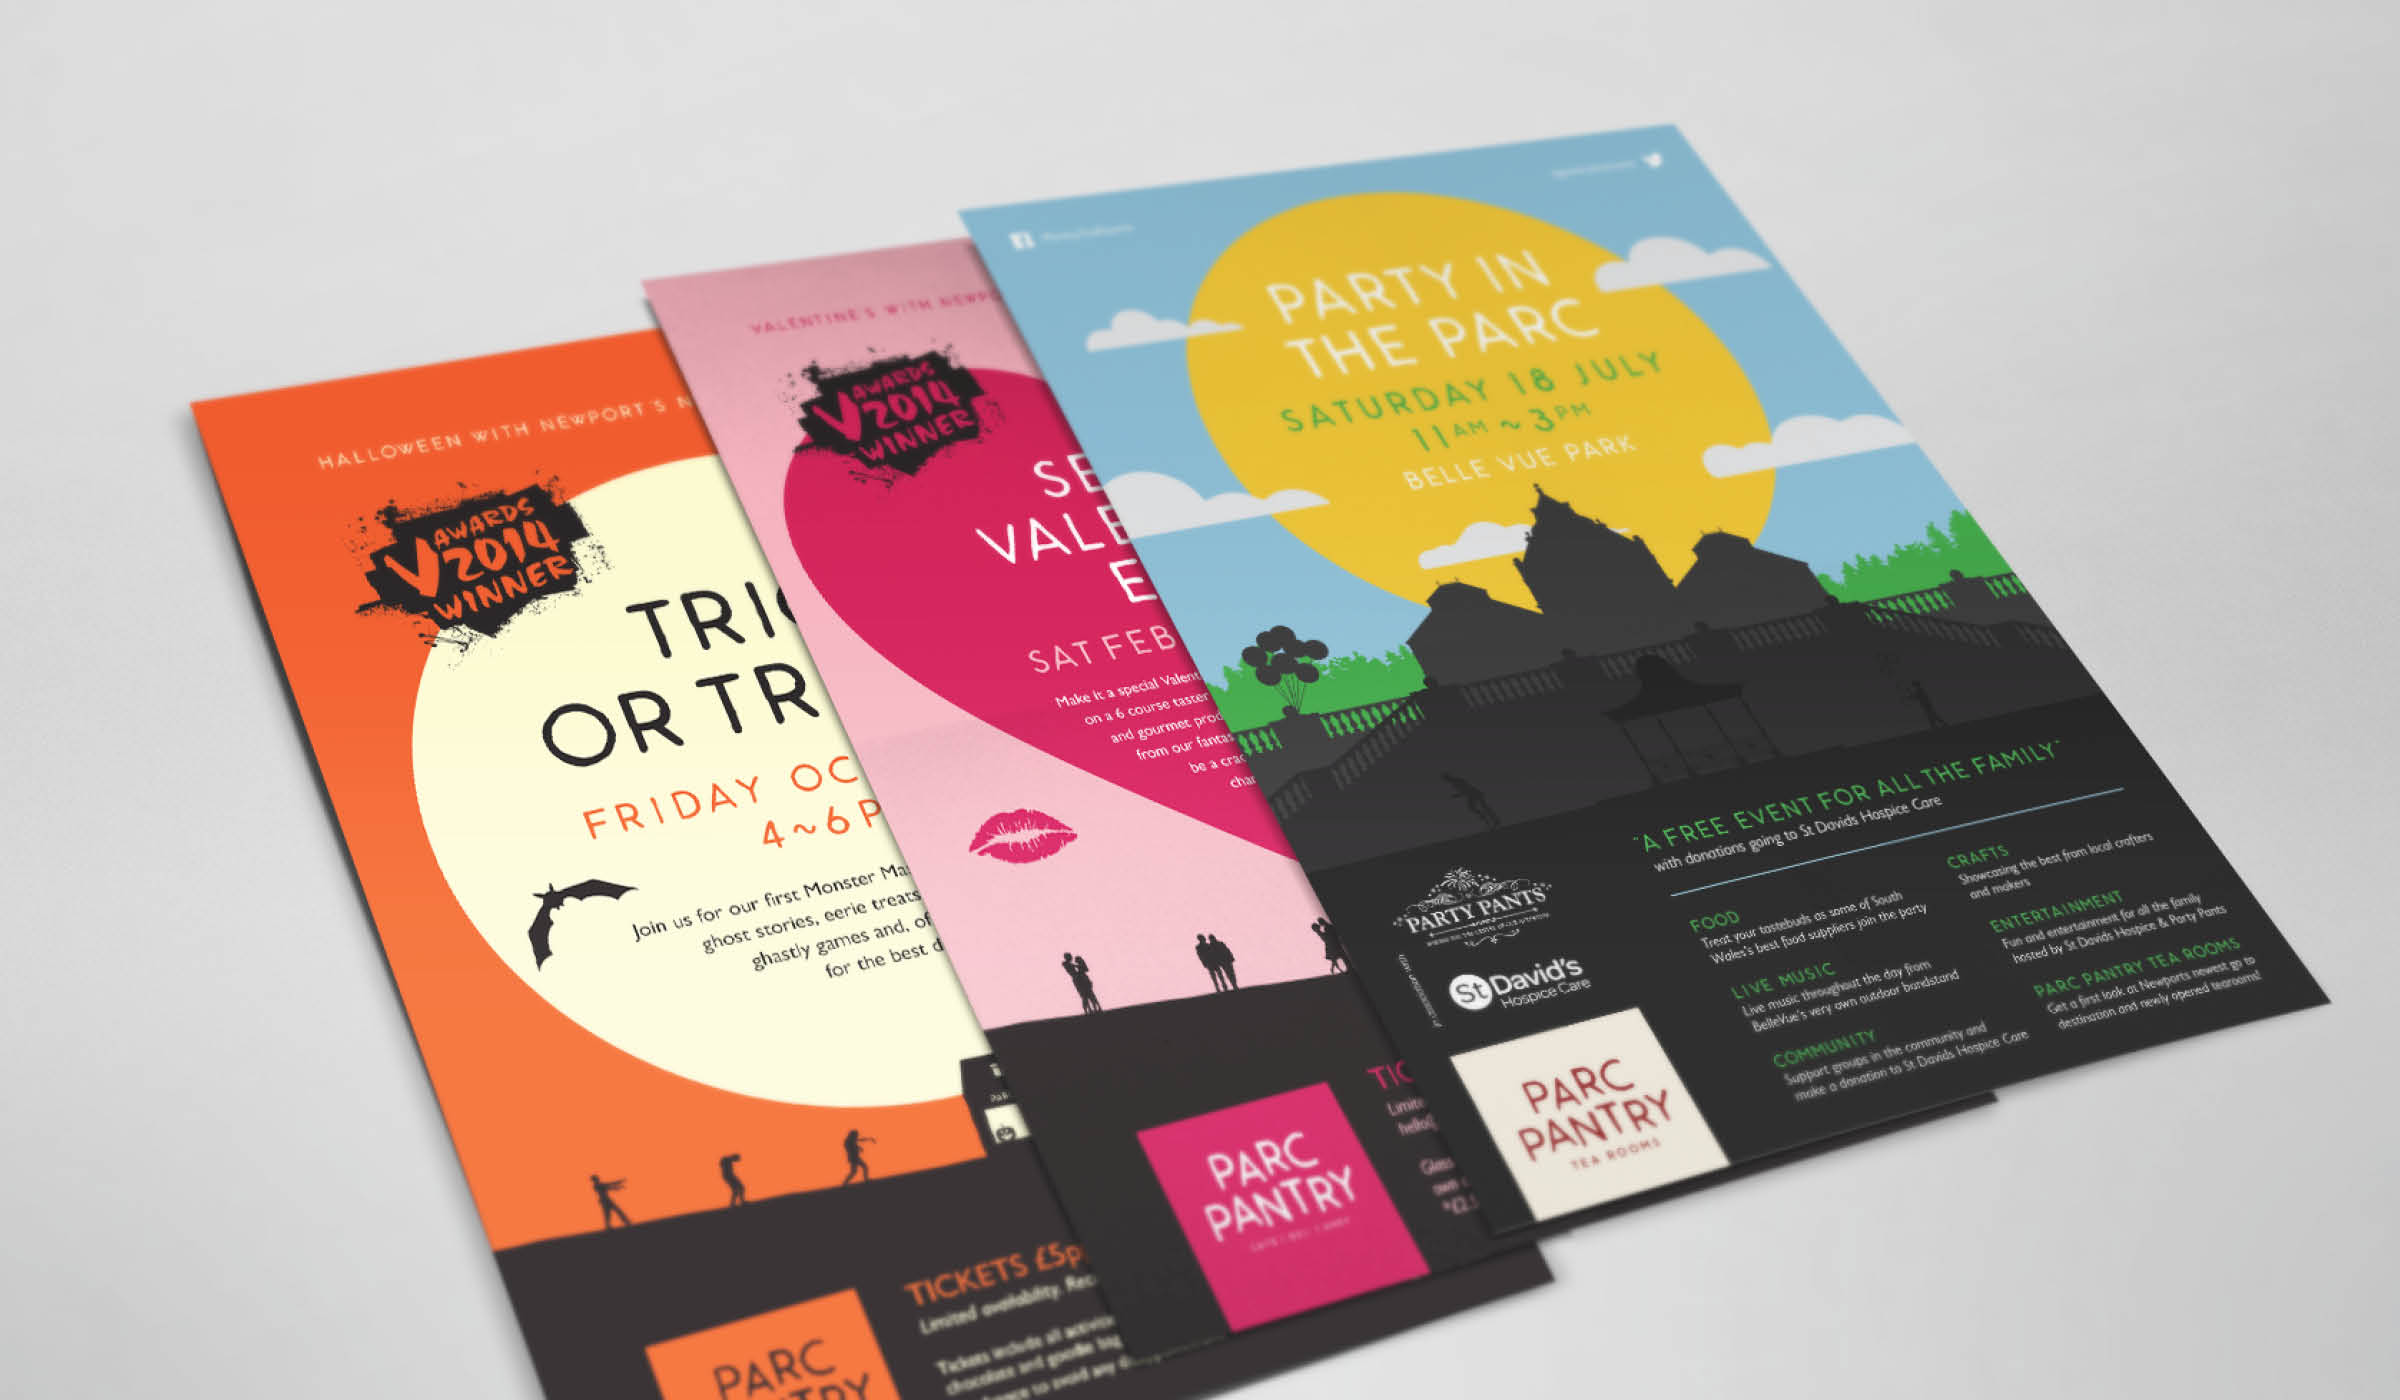 illustrated poster designs for cafe events